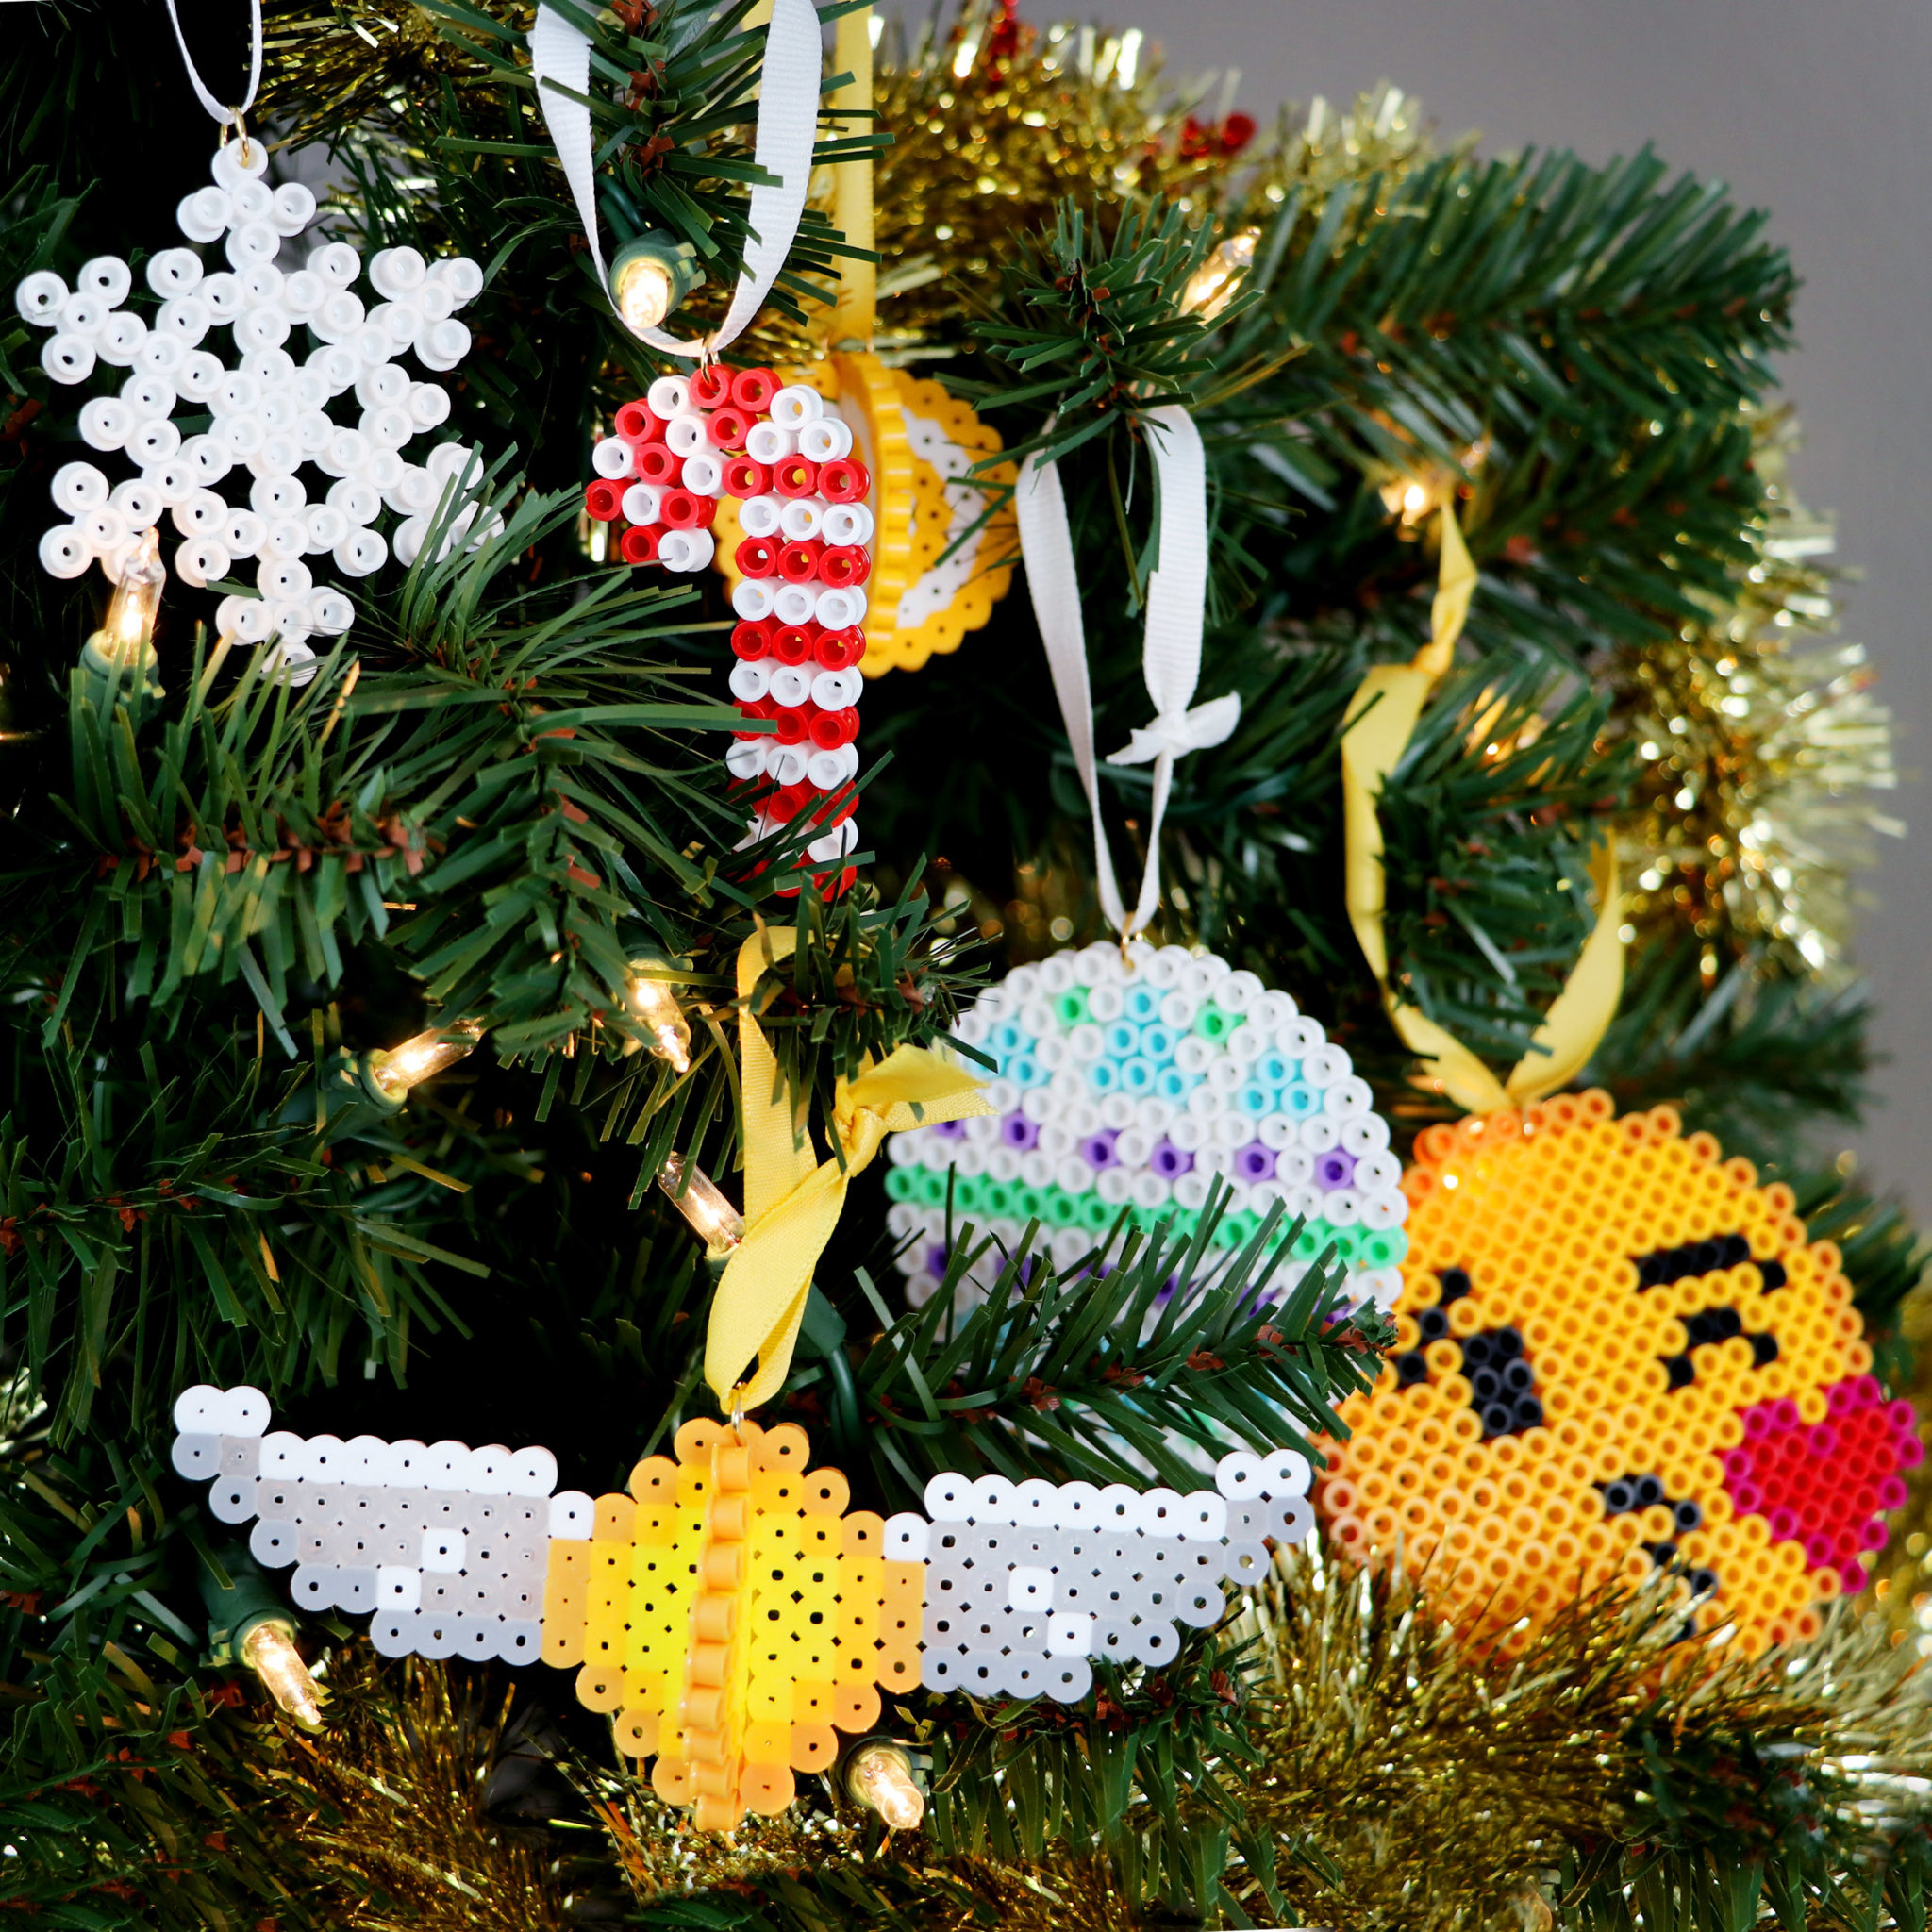 all_ornaments